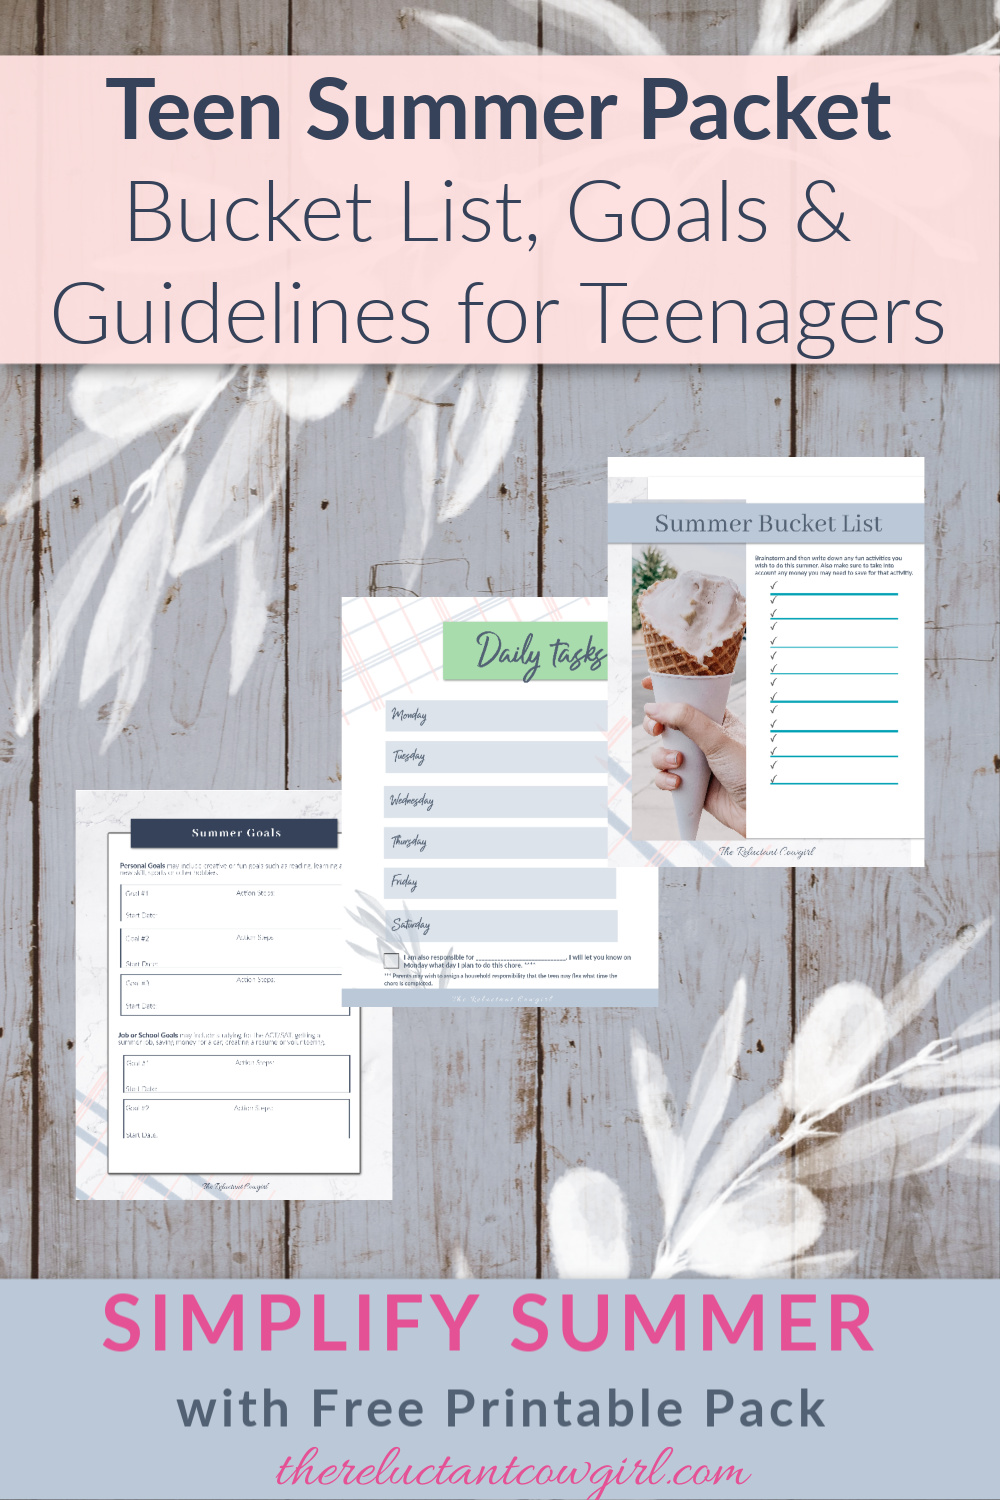 Create a SUMMER CONTRACT with Your TEEN